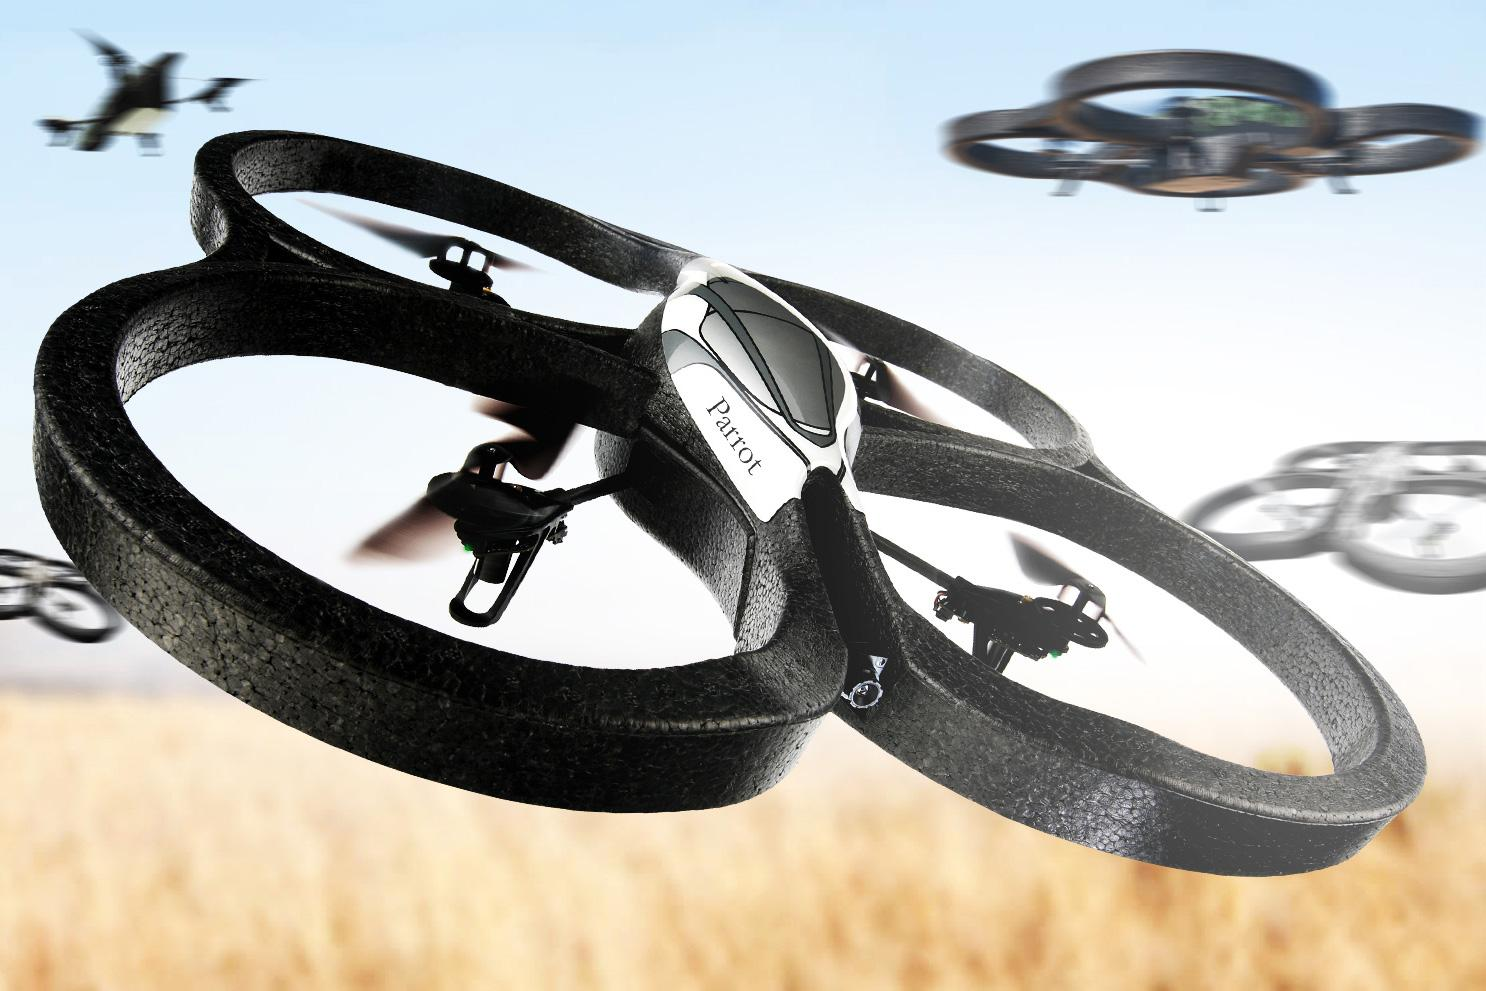 best personal drones with Start Serious Drone Habit on 4 Surprising Uses Civil Drones further China Soldier Carrying Drone moreover 10 Best Worst Technology Products Gadgets 2016 also Hover Board The New Way To Travel And 10 Reasons Why It Is So Popular moreover Detail.